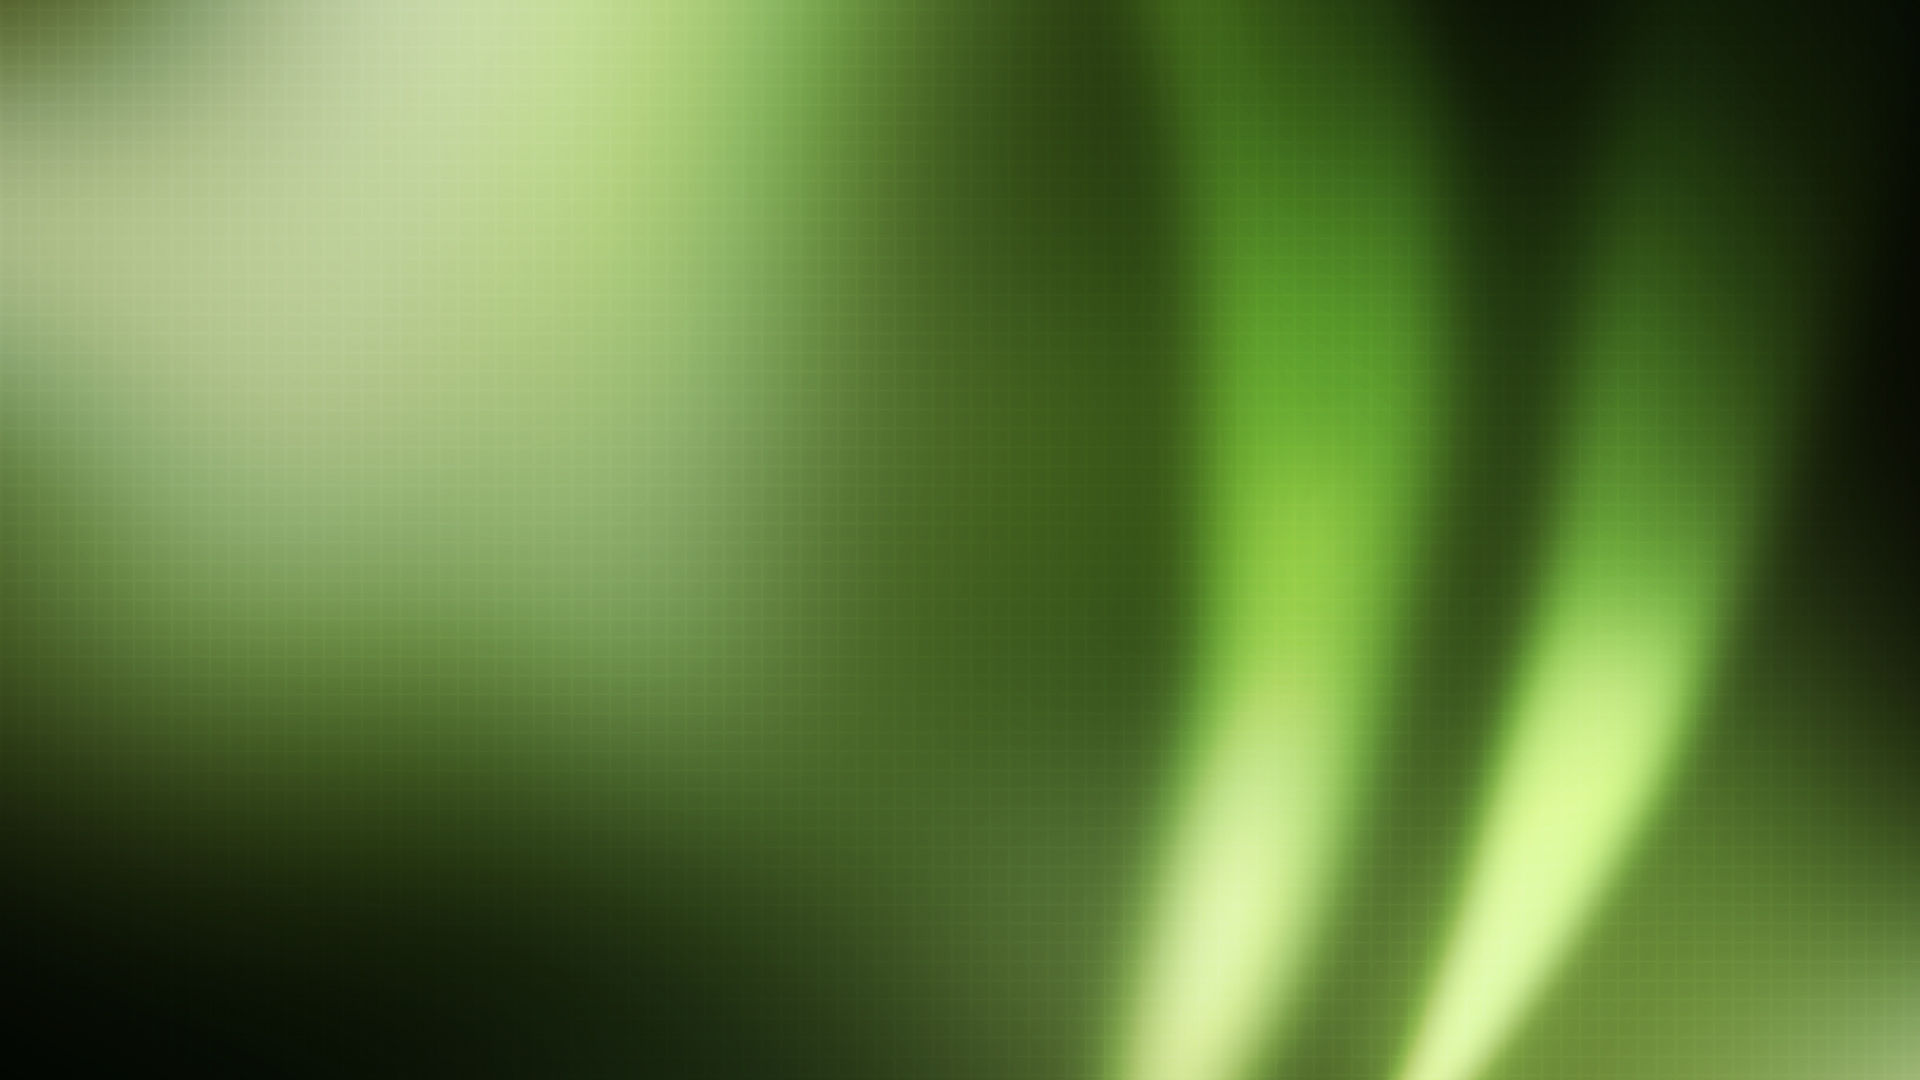 Green Wallpaper 125